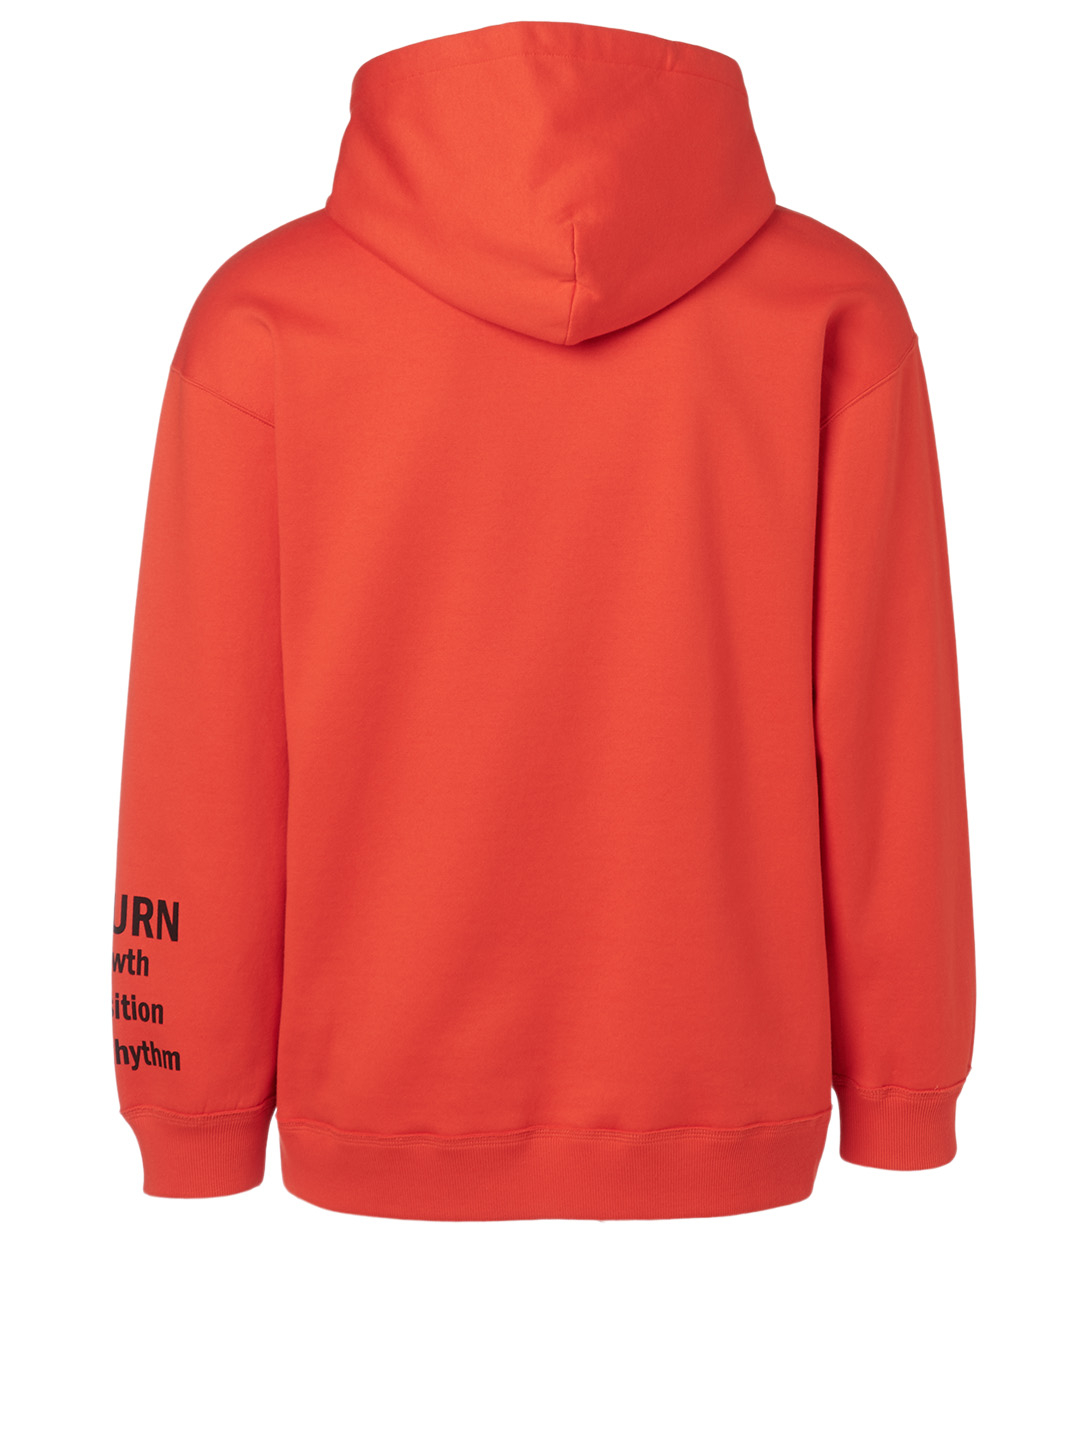 VALENTINO Soul Planets Hoodie Men's Orange